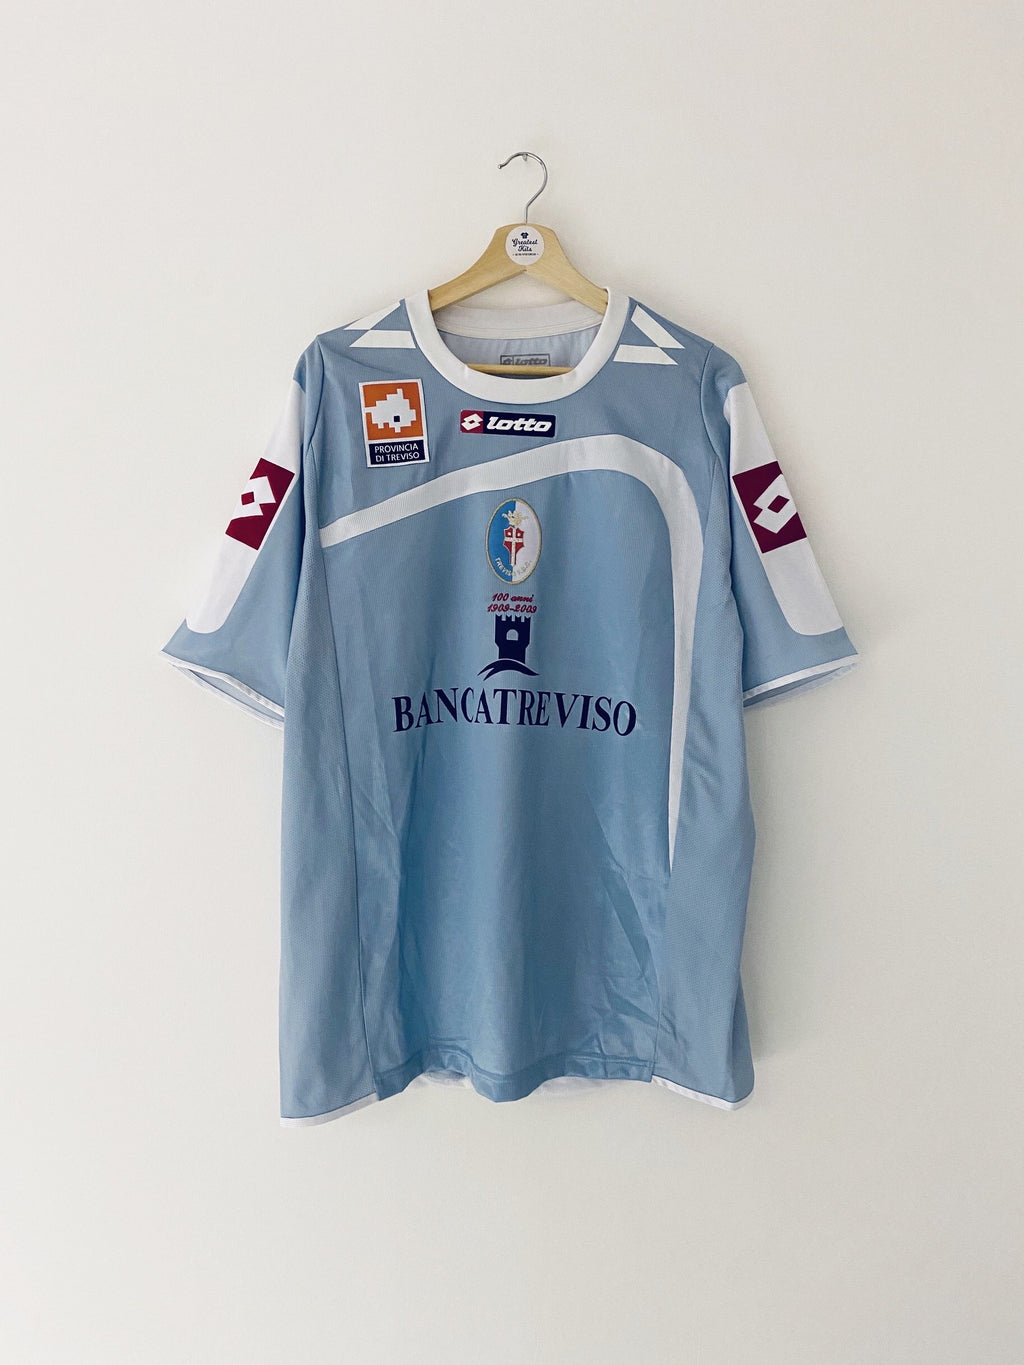 2008/09 Treviso Away Centenary Shirt (XL) 9/10